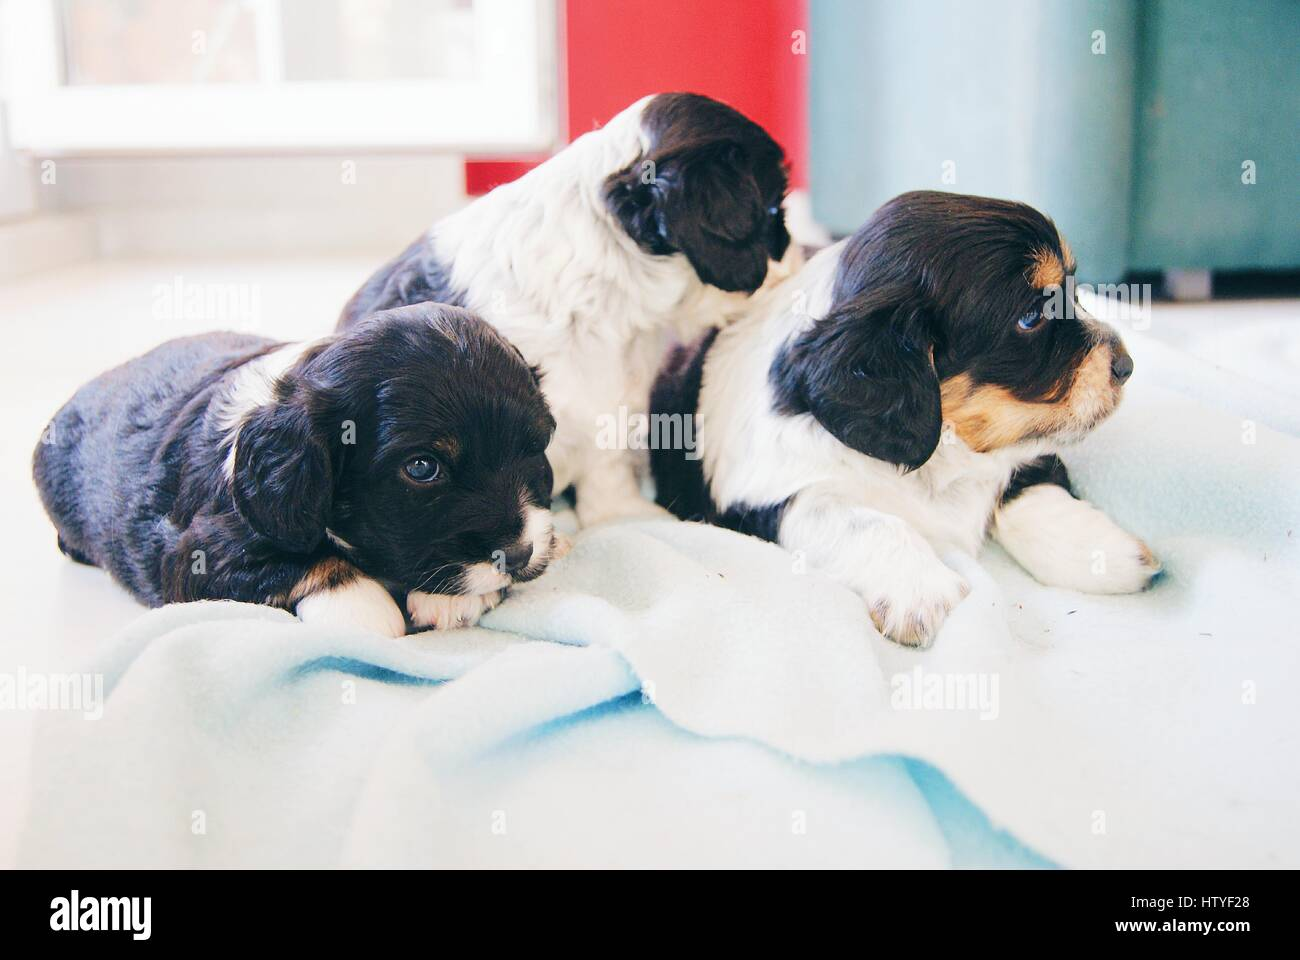 Three Cocker Spaniel Puppy dogs on a bed - Stock Image